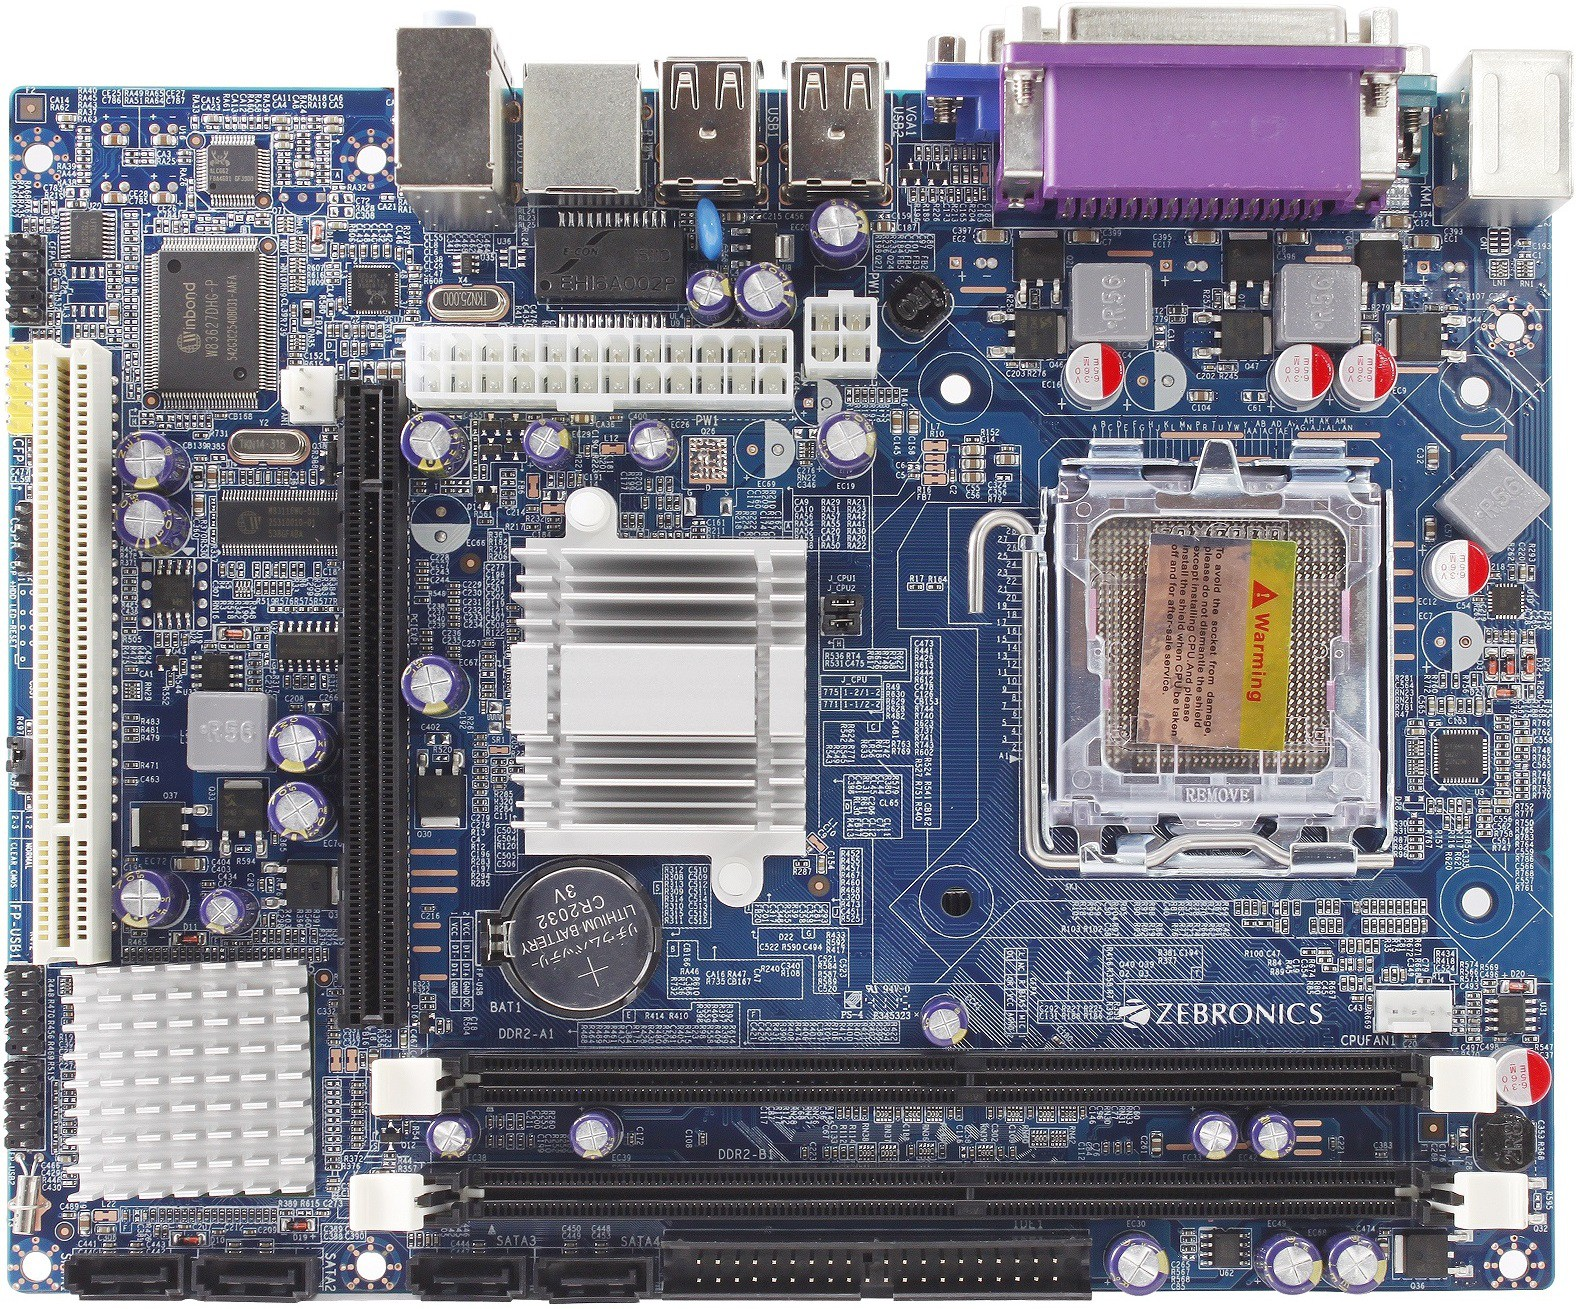 Zebronics G31 Motherboard Price In India 29 Nov 2018 Compare Xbox 360 Slim